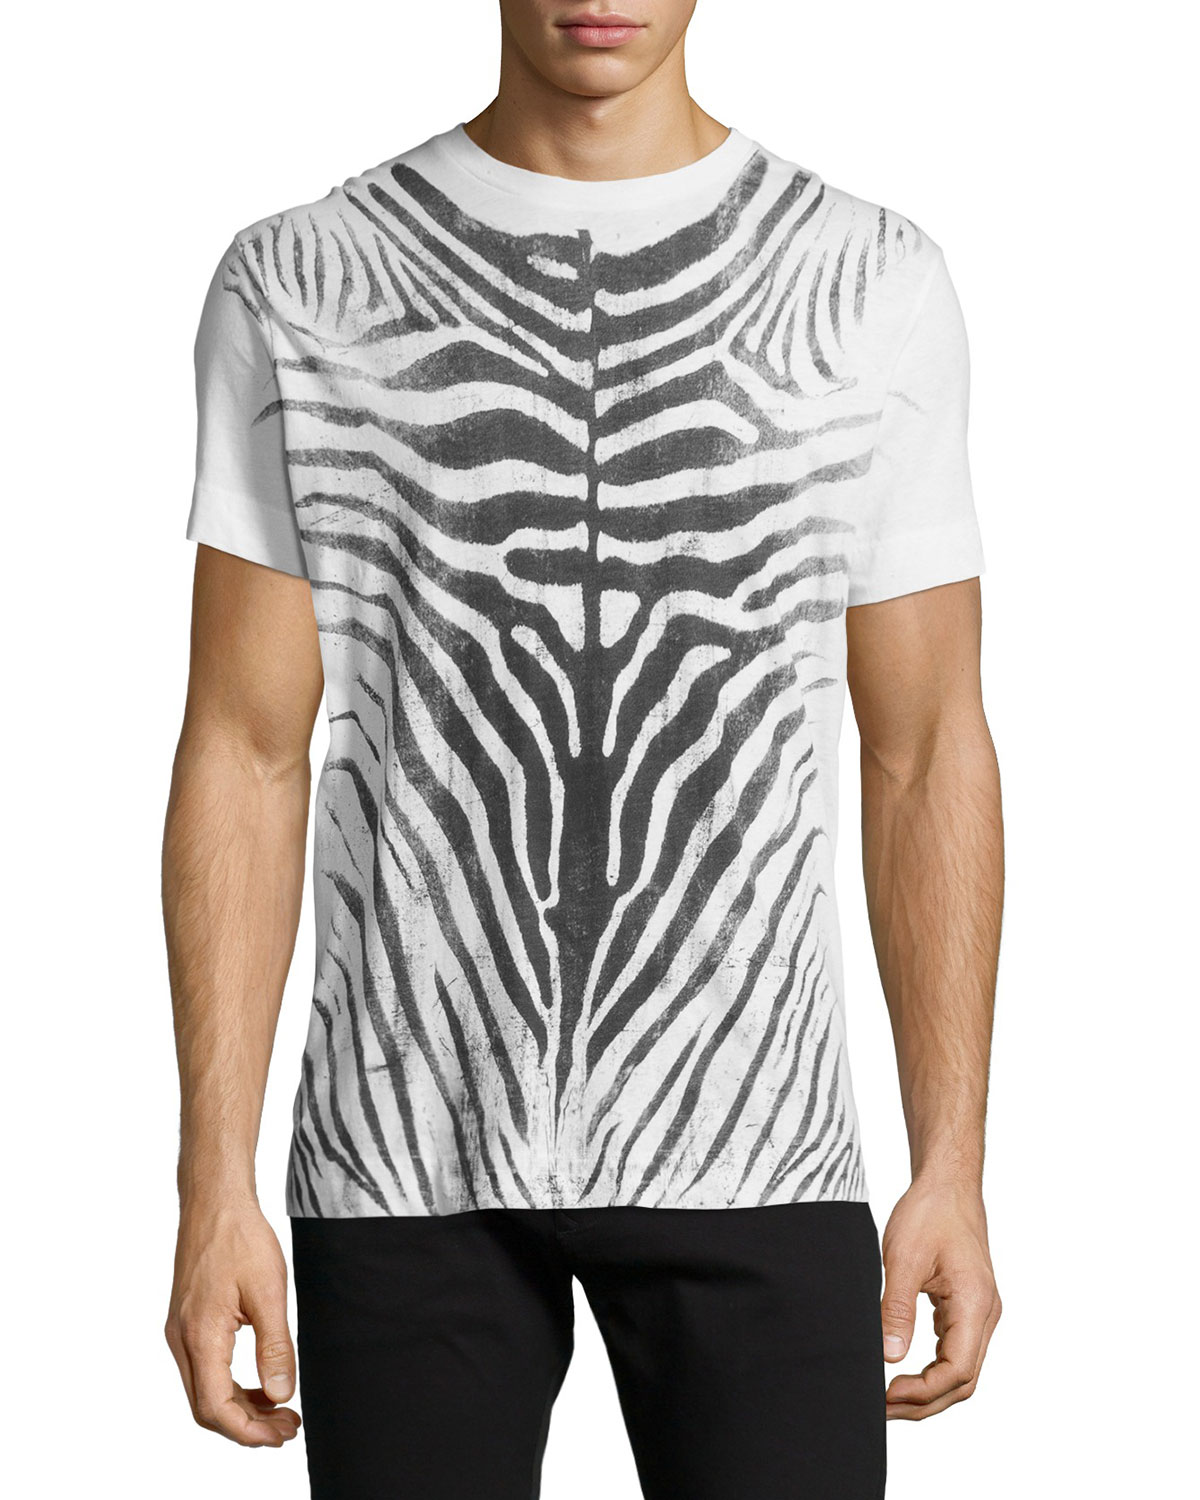 Zebra Water-Print Knit Tee, Off-White